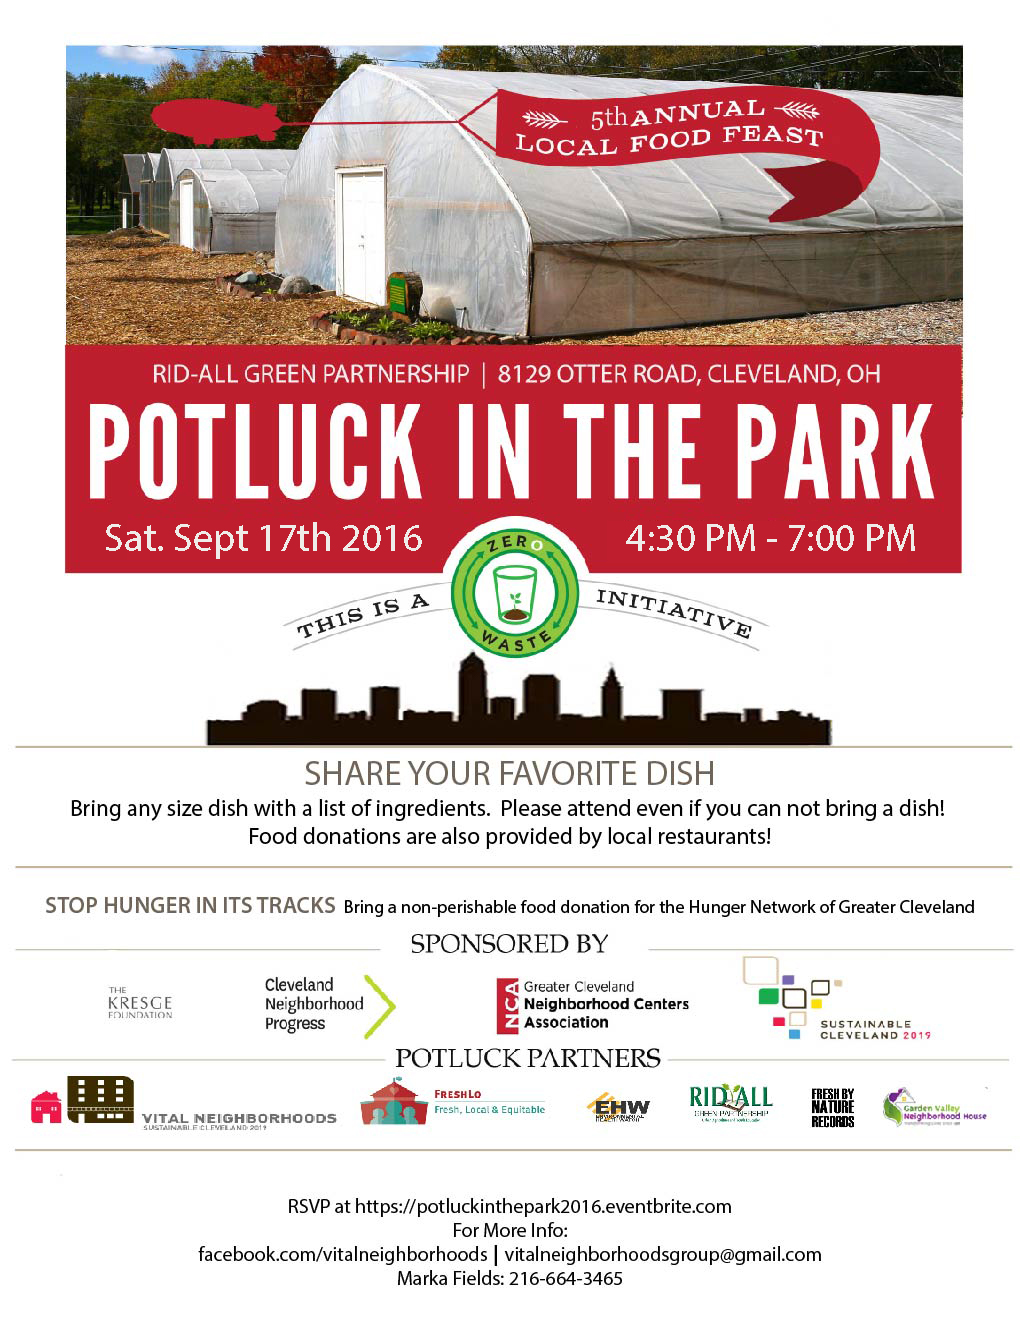 PotluckInThePark2016Flyer_final.jpg